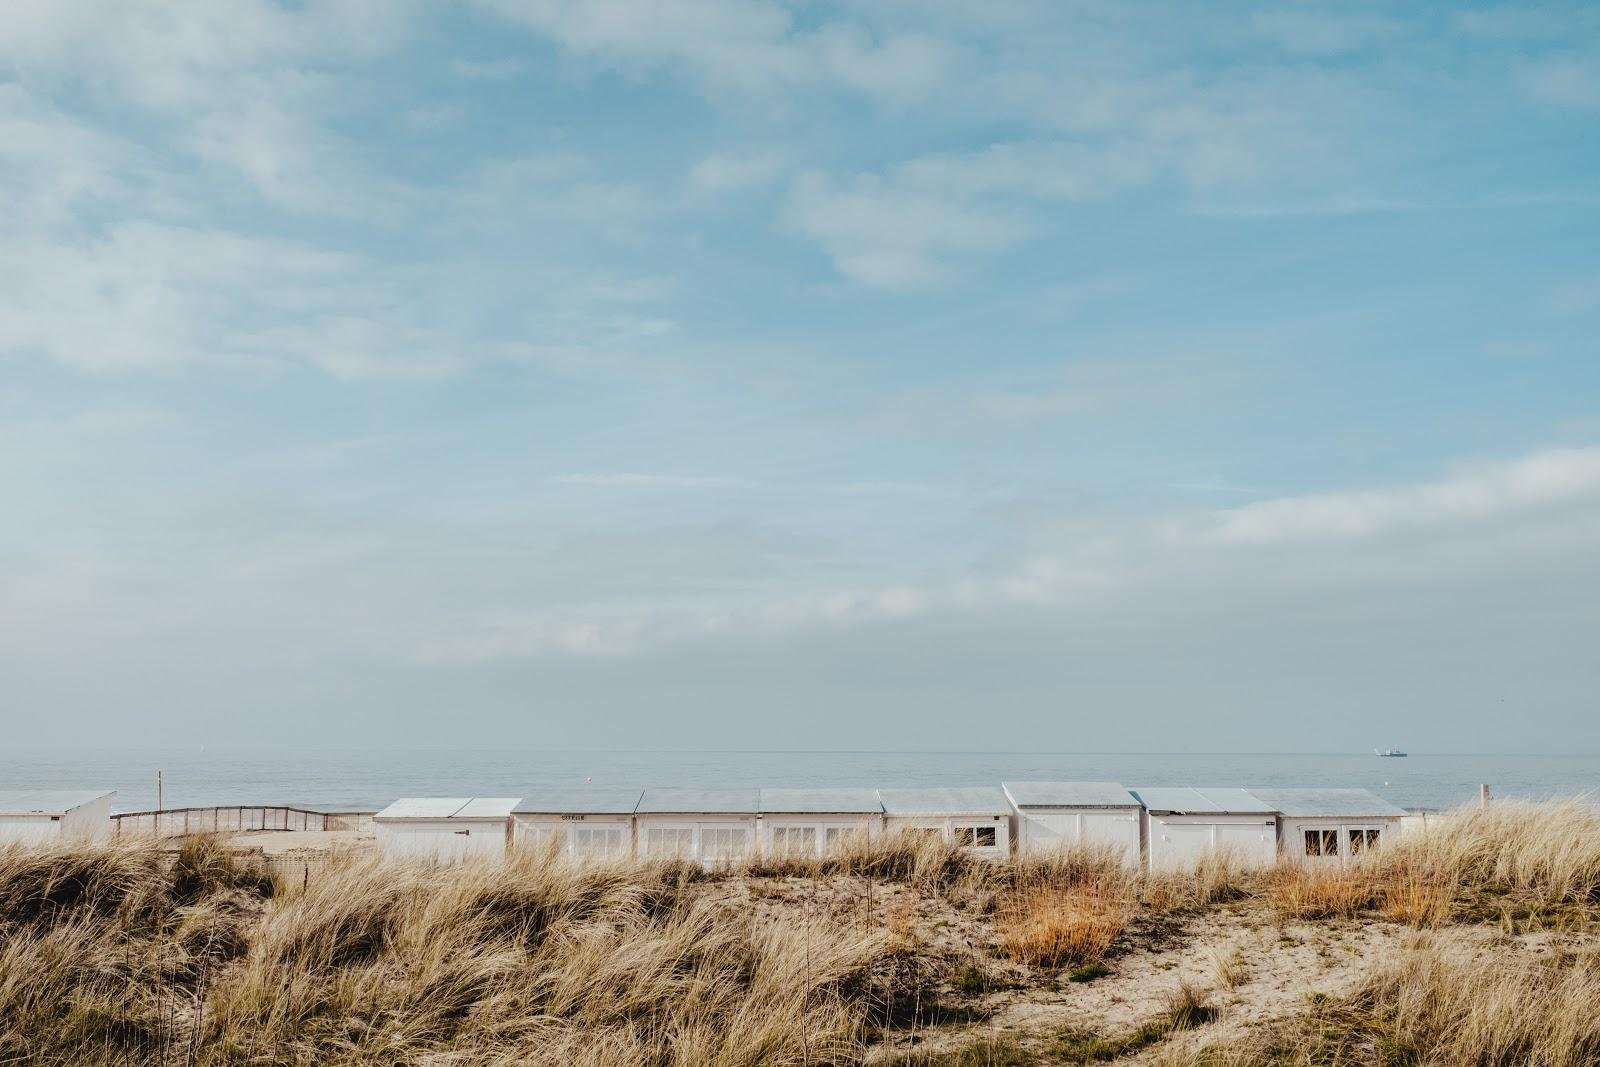 Knokke-Heist mobilised its people against the construction of an artificial test island.